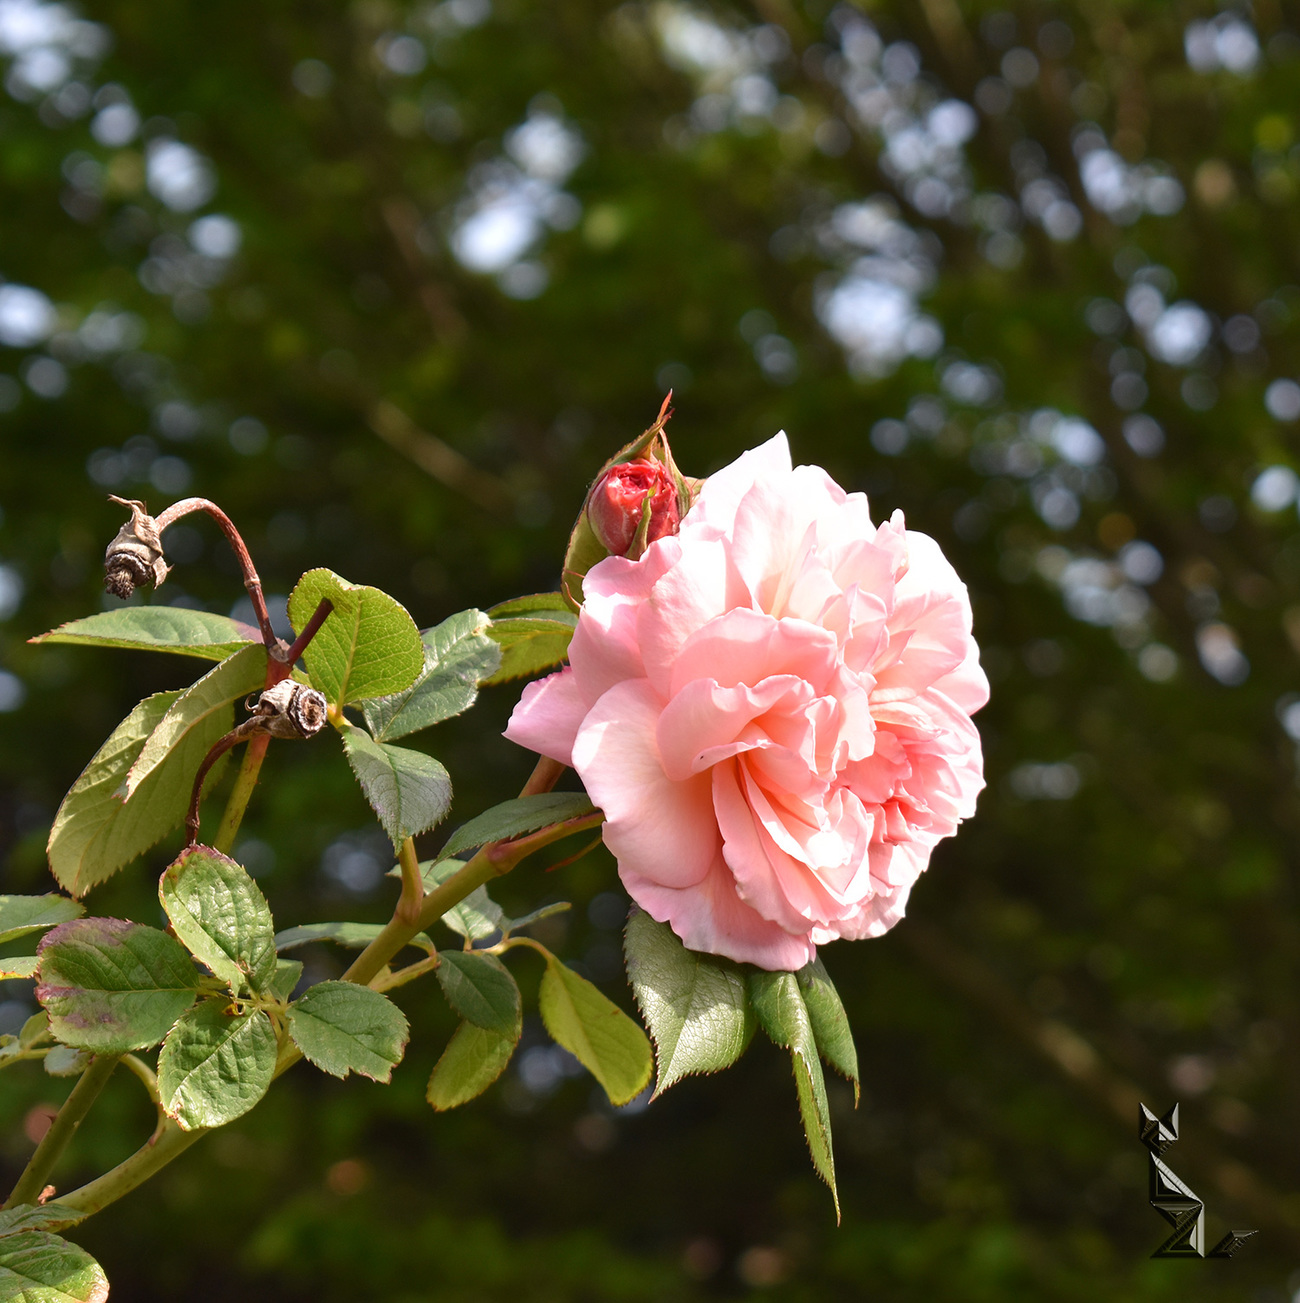 A Shropshire Lad - Rose (1) by A_Sunbeam